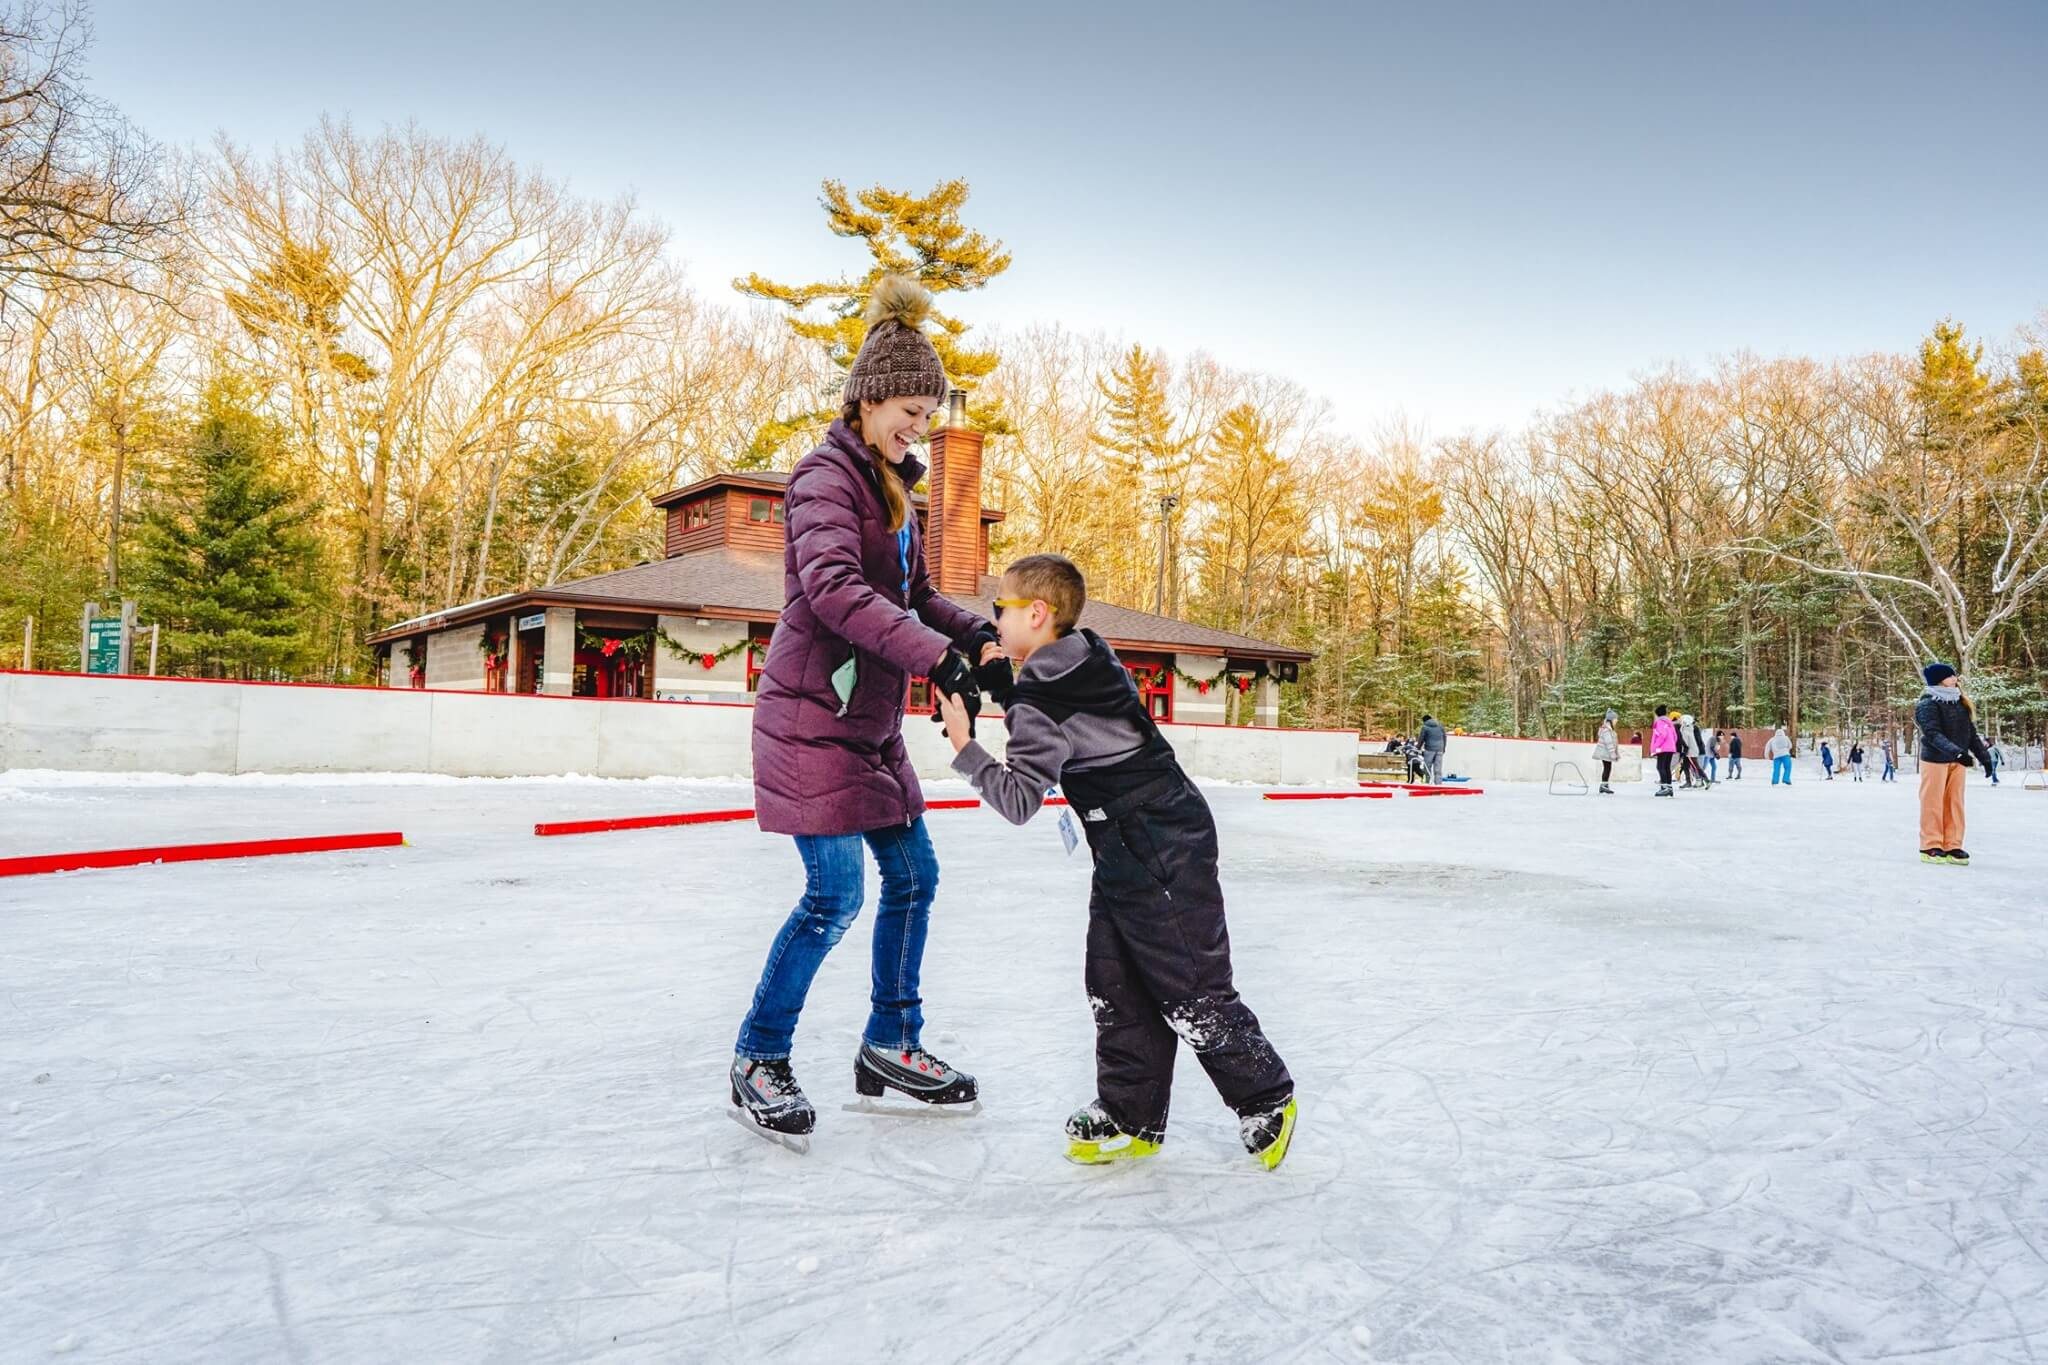 Michigan State Parks Offer Winter Activities + Fun For All Ages